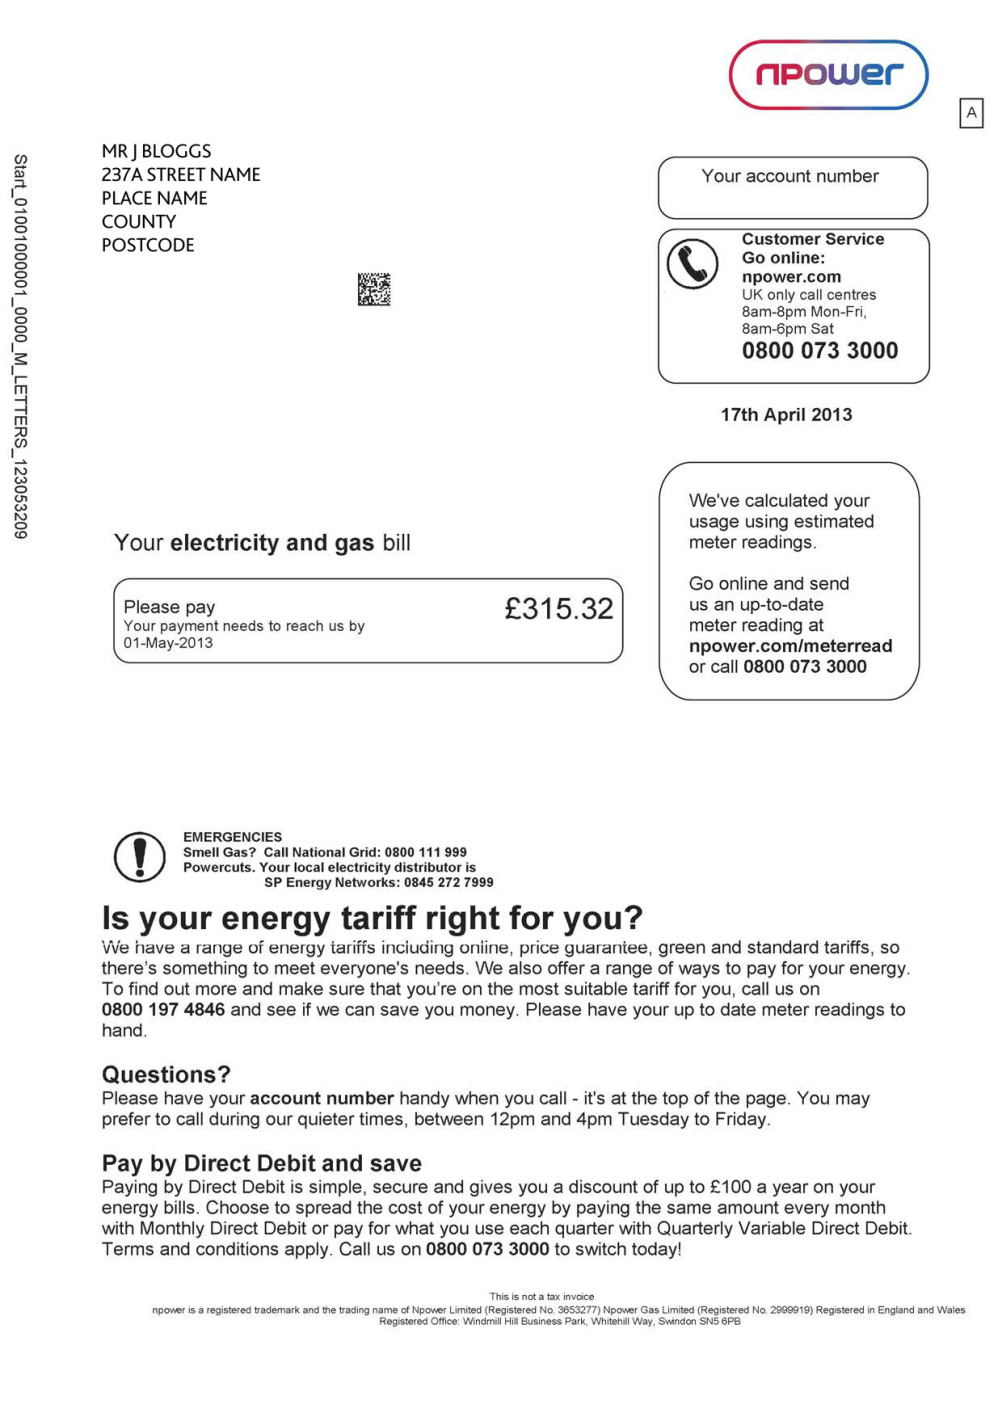 The old Npower bill